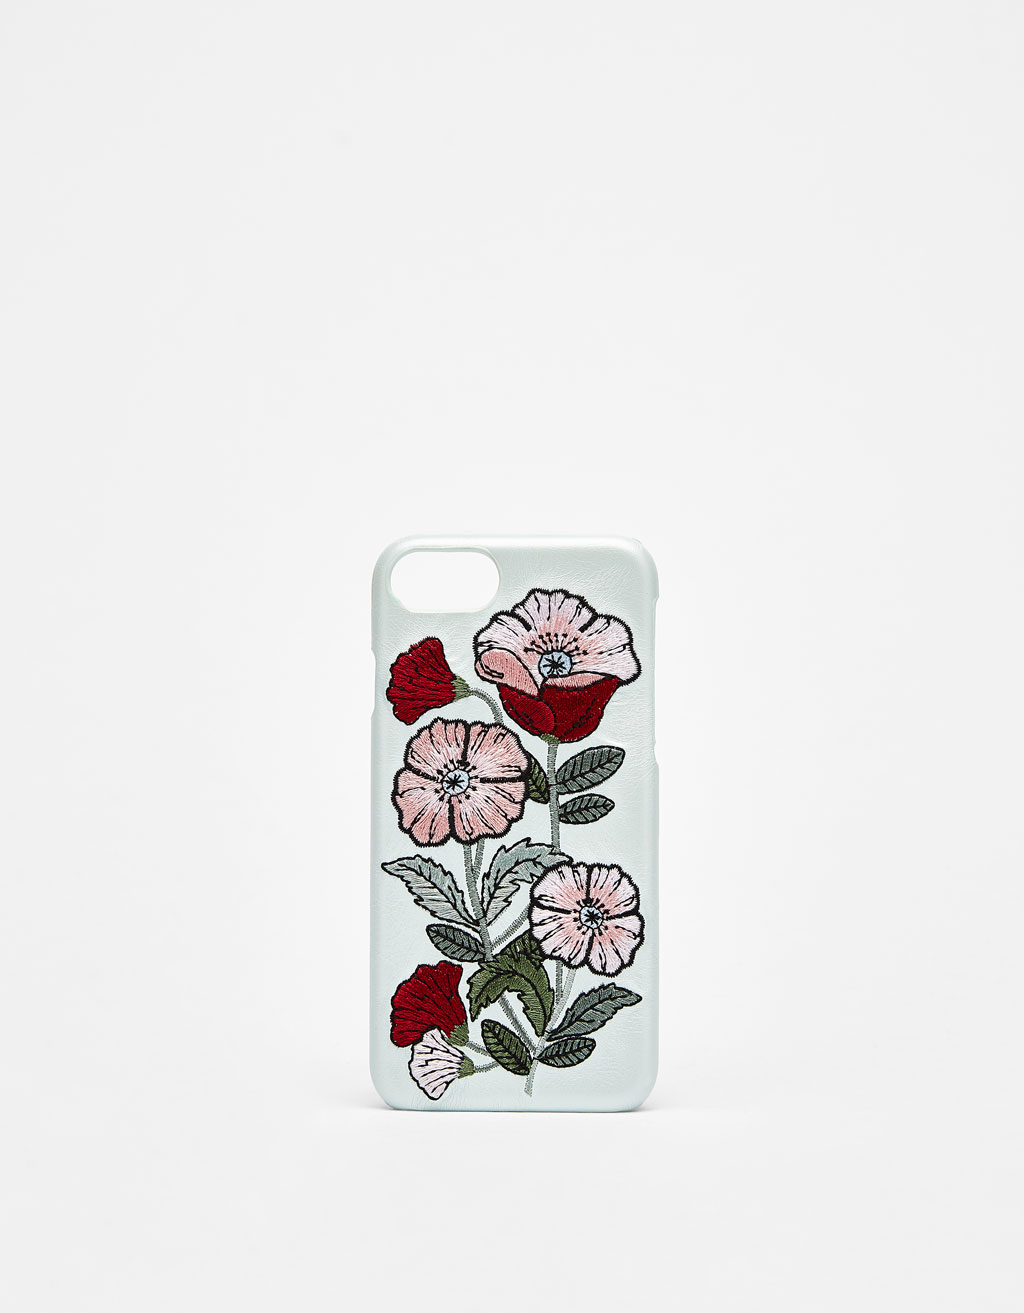 Carcasa con bordado de flores iPhone 6/6s/7/8